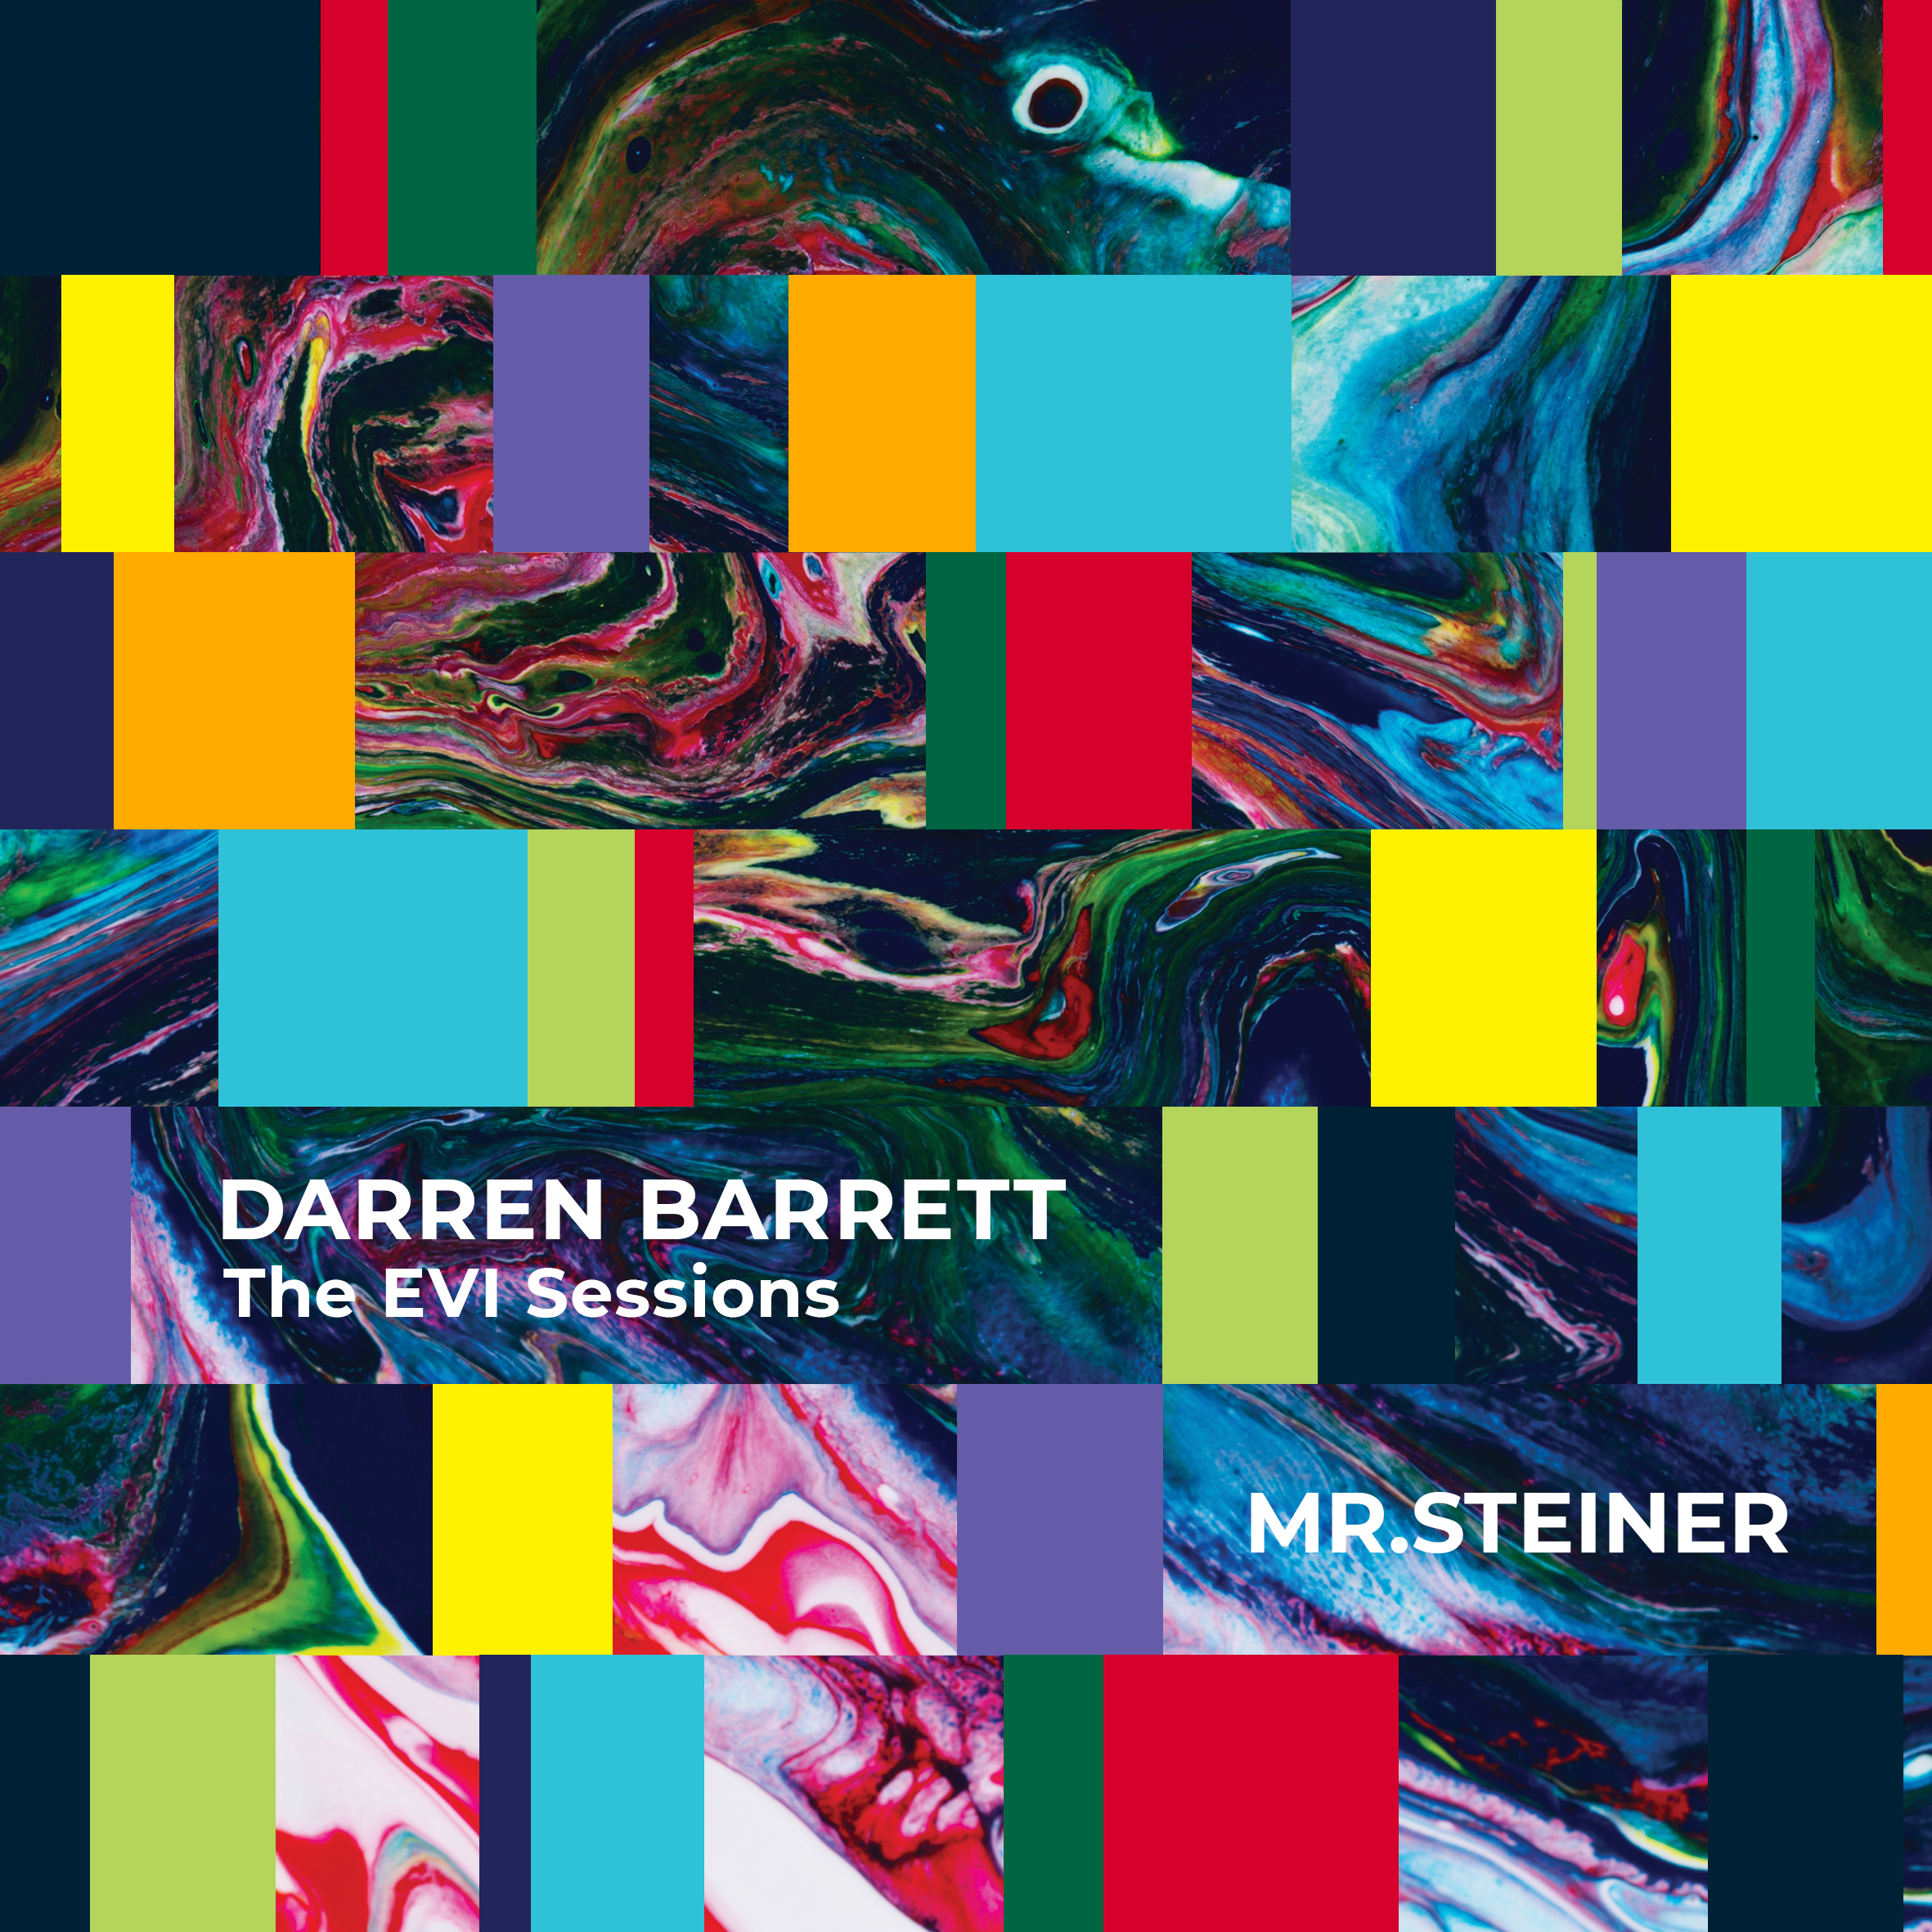 REVIEW: Mike Greenblatt's Rant 'N' Roll Review of Darren Barrett Mr Steiner by The Aquarian Weekly